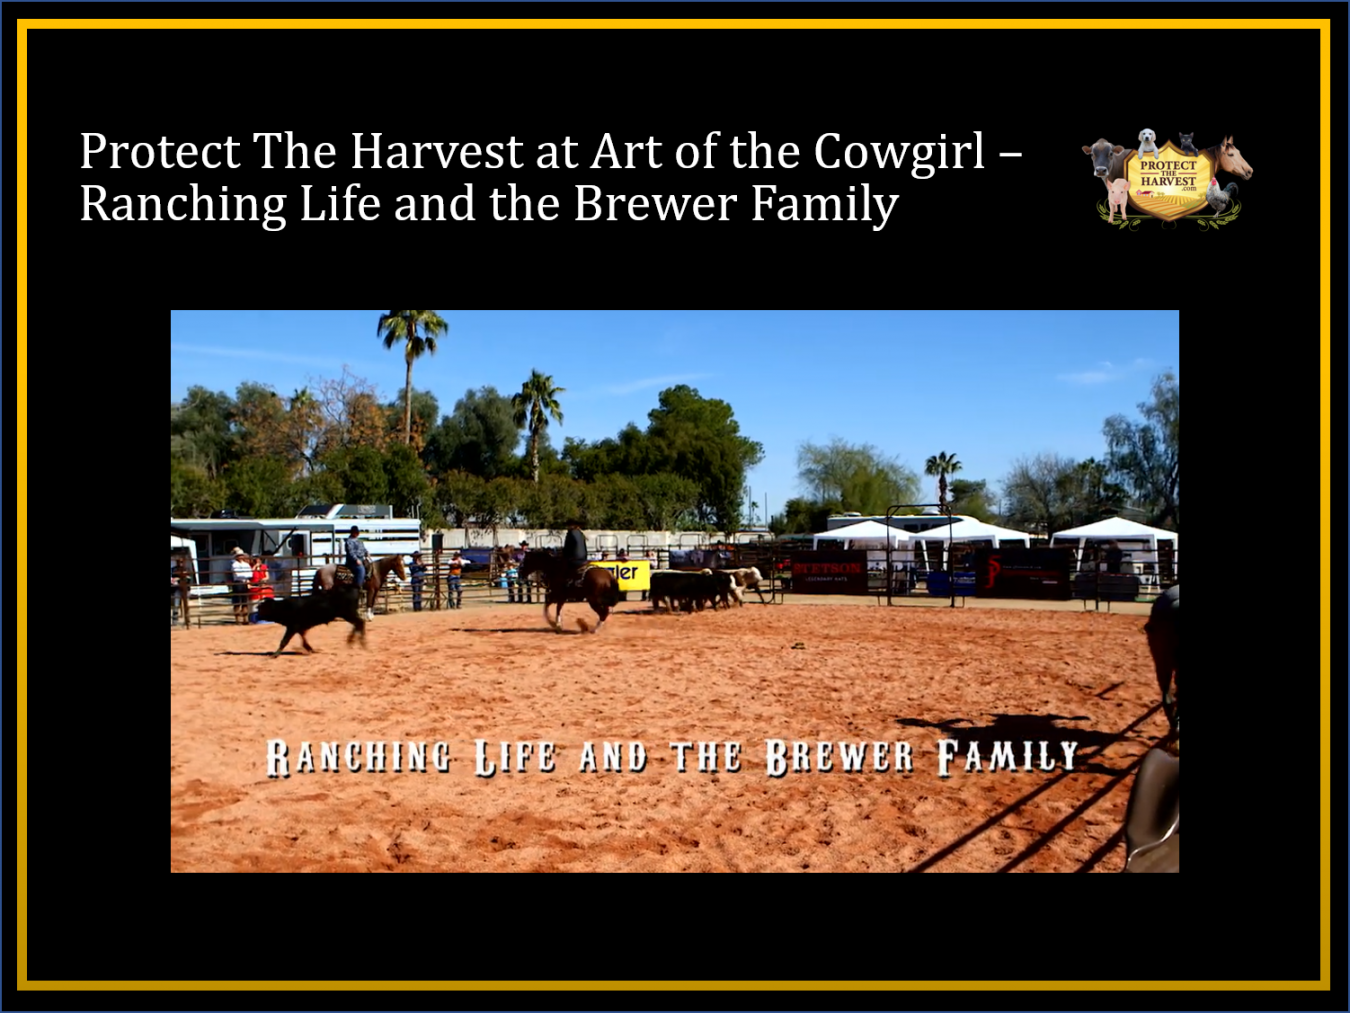 Protect The Harvest at Art of the Cowgirl - Ranching Life and the Brewer Family